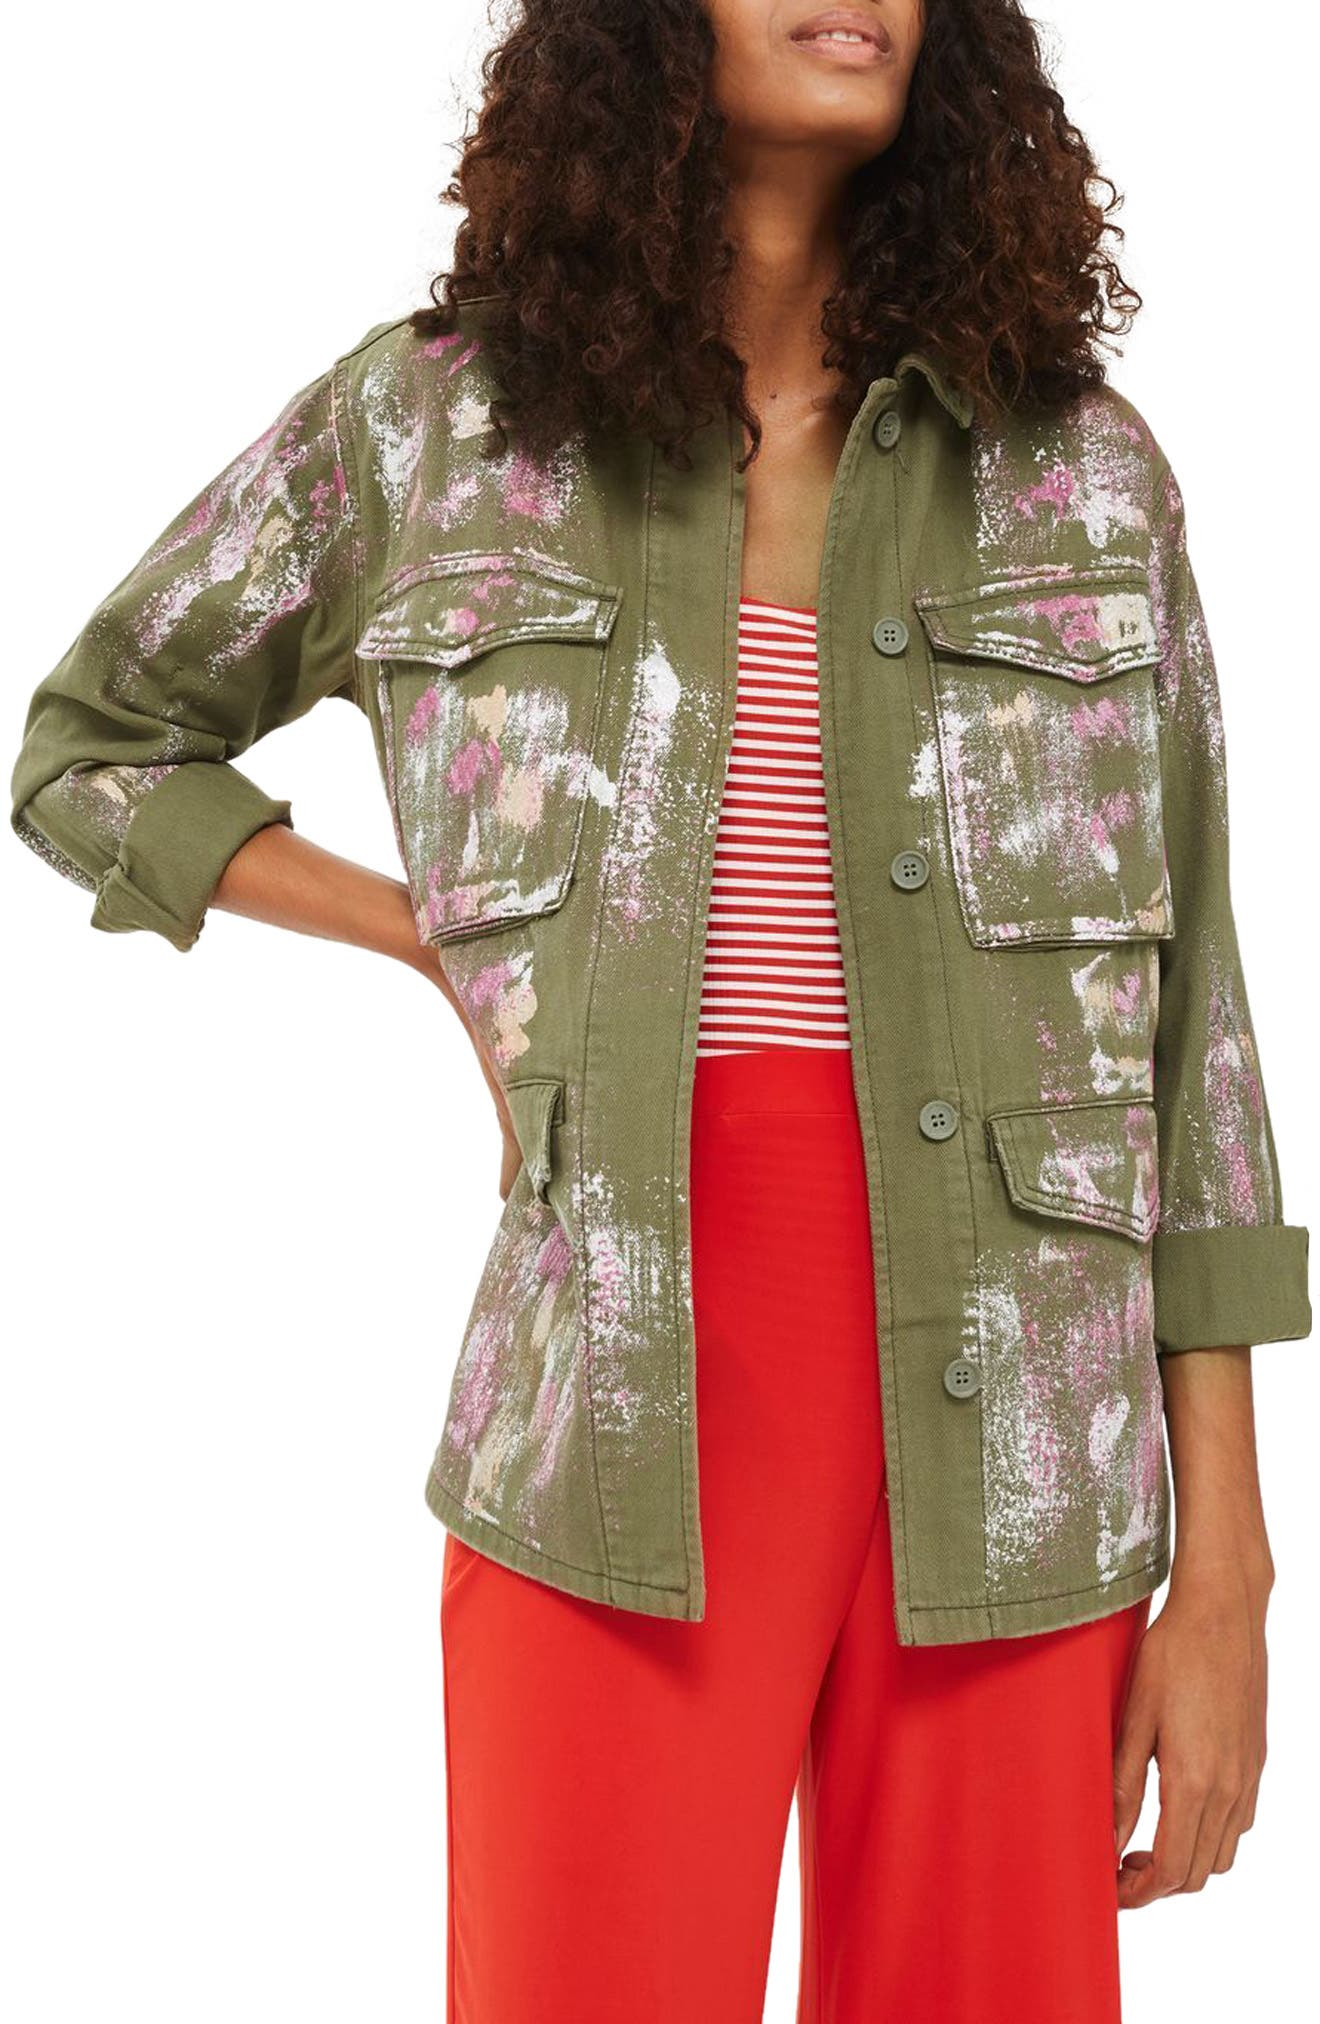 Topshop Ethan Metallic Foil Shirt Jacket